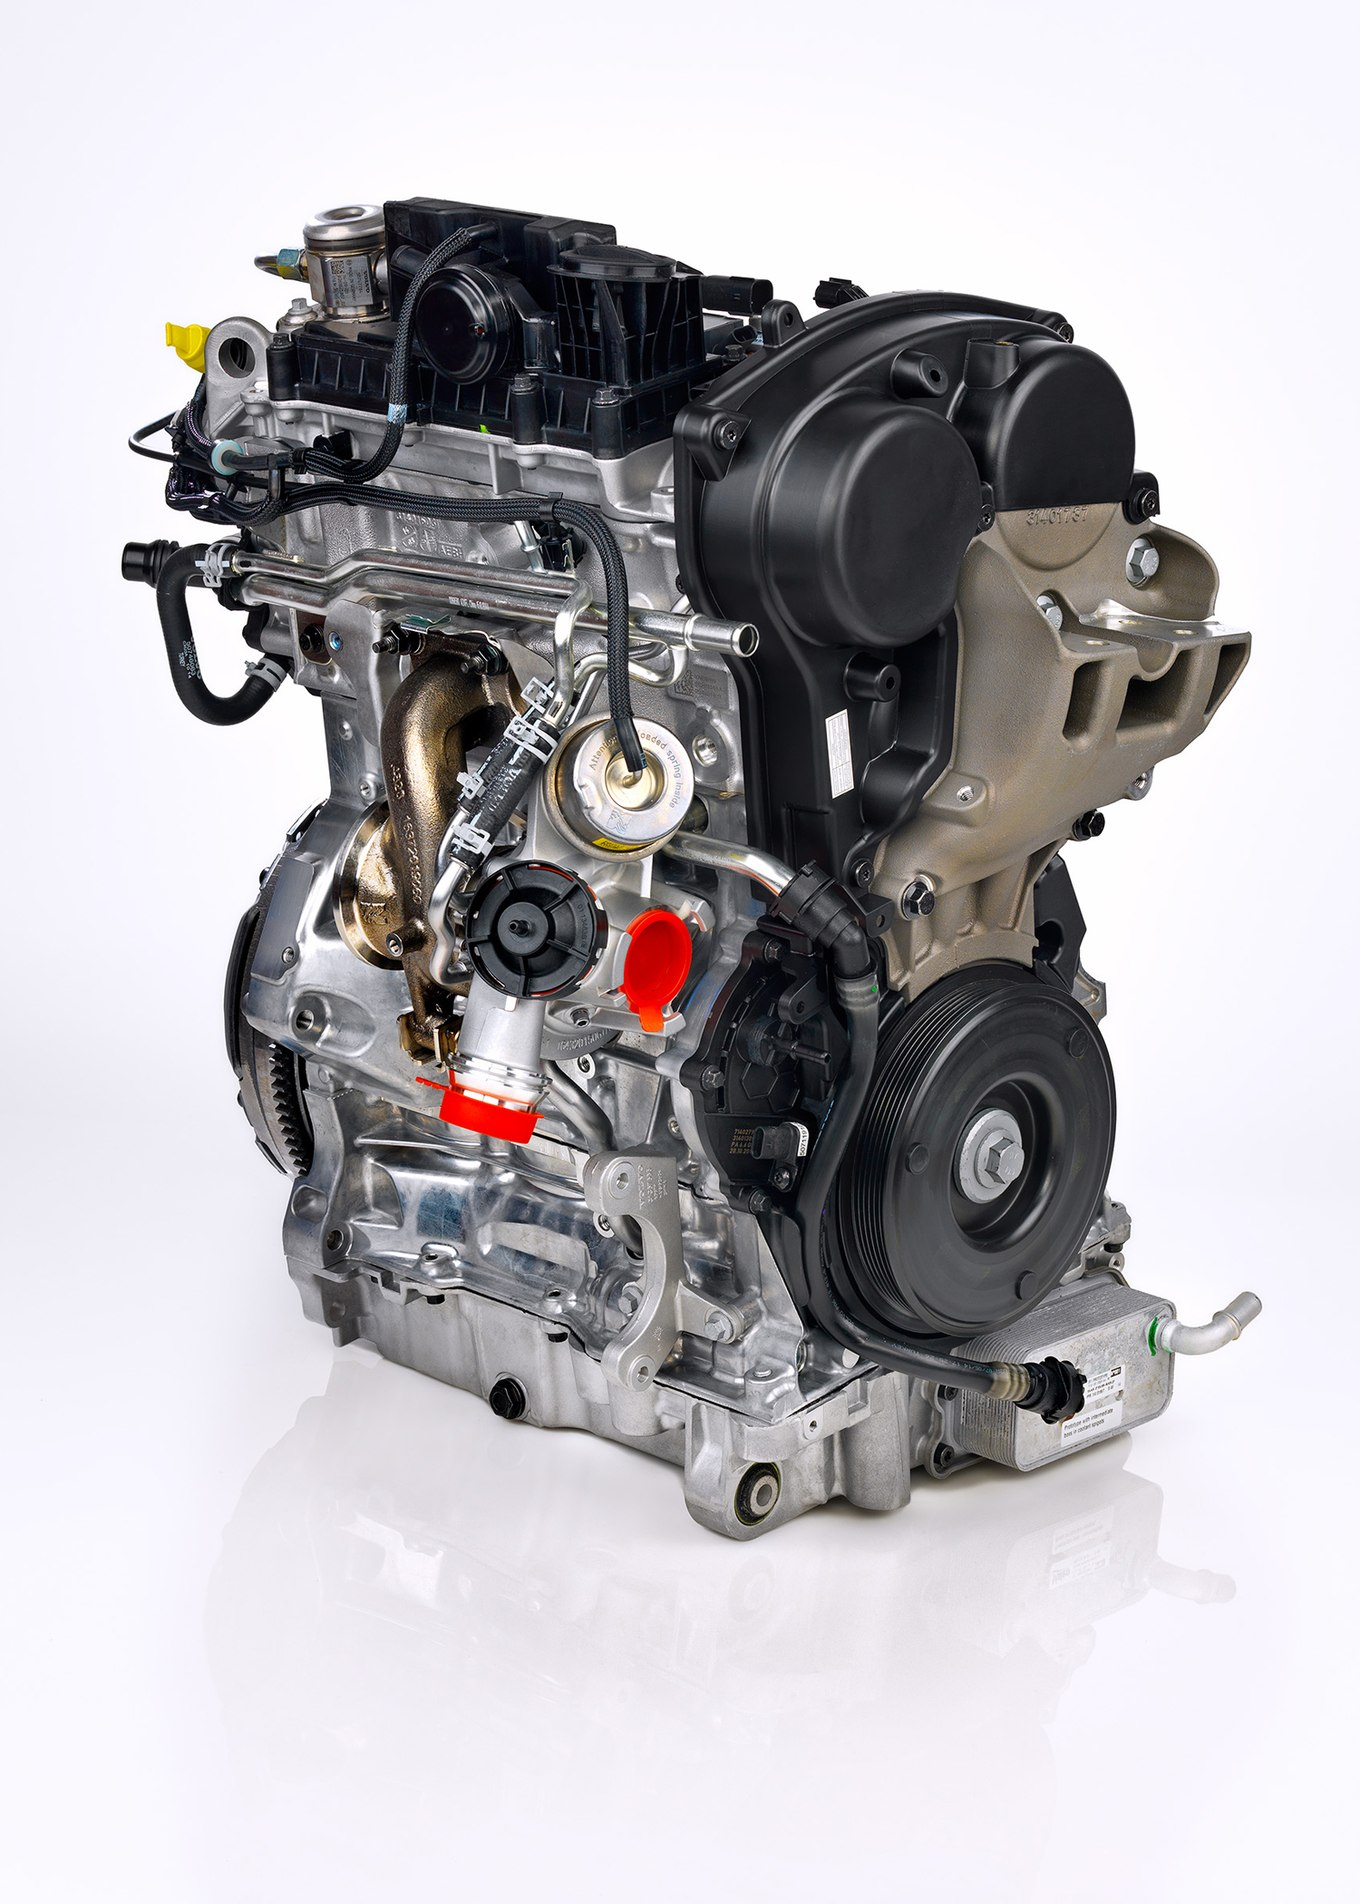 Volvo engine photo - 3